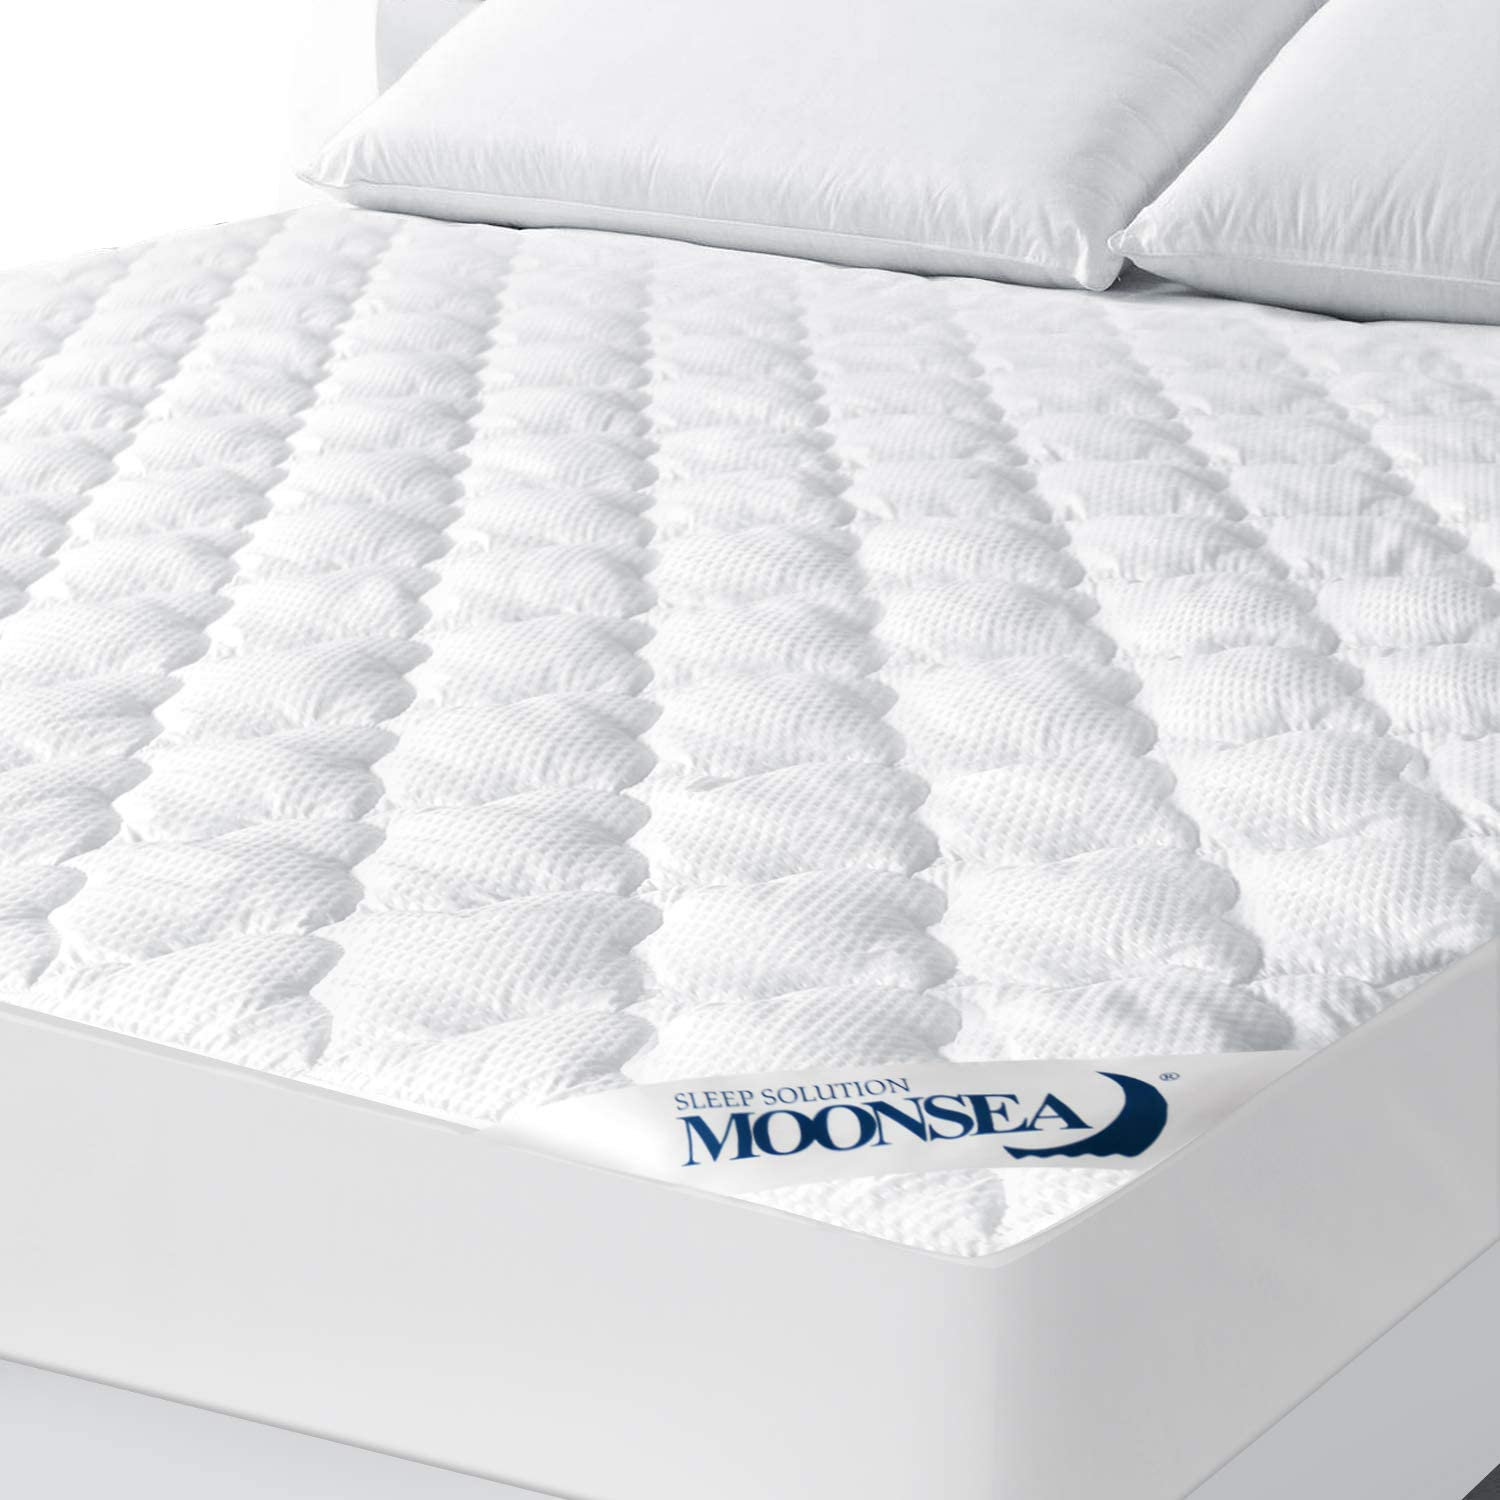 Queen Mattress Pad Thick Quilted Mattress Topper Cover, Super Soft Breathable and Noiseless Down Alternative Fiber Pillow Top Mattress Pad with Deep Pocket Fits Up to 8-18 Inch Mattress